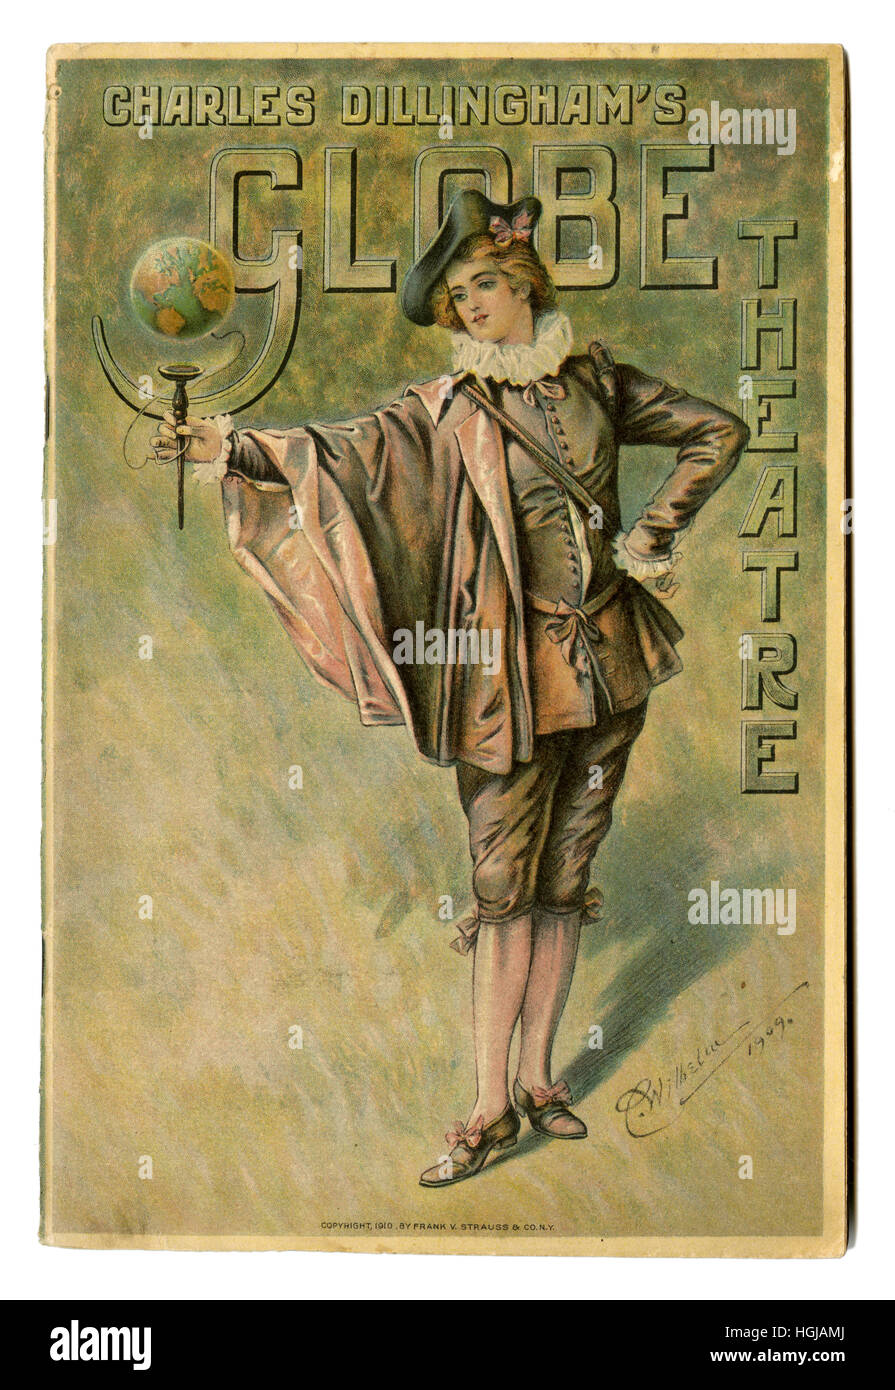 Antique theater program from Charles Dillingham's Globe Theater, week of December 12, 1910, on Broadway & - Stock Image